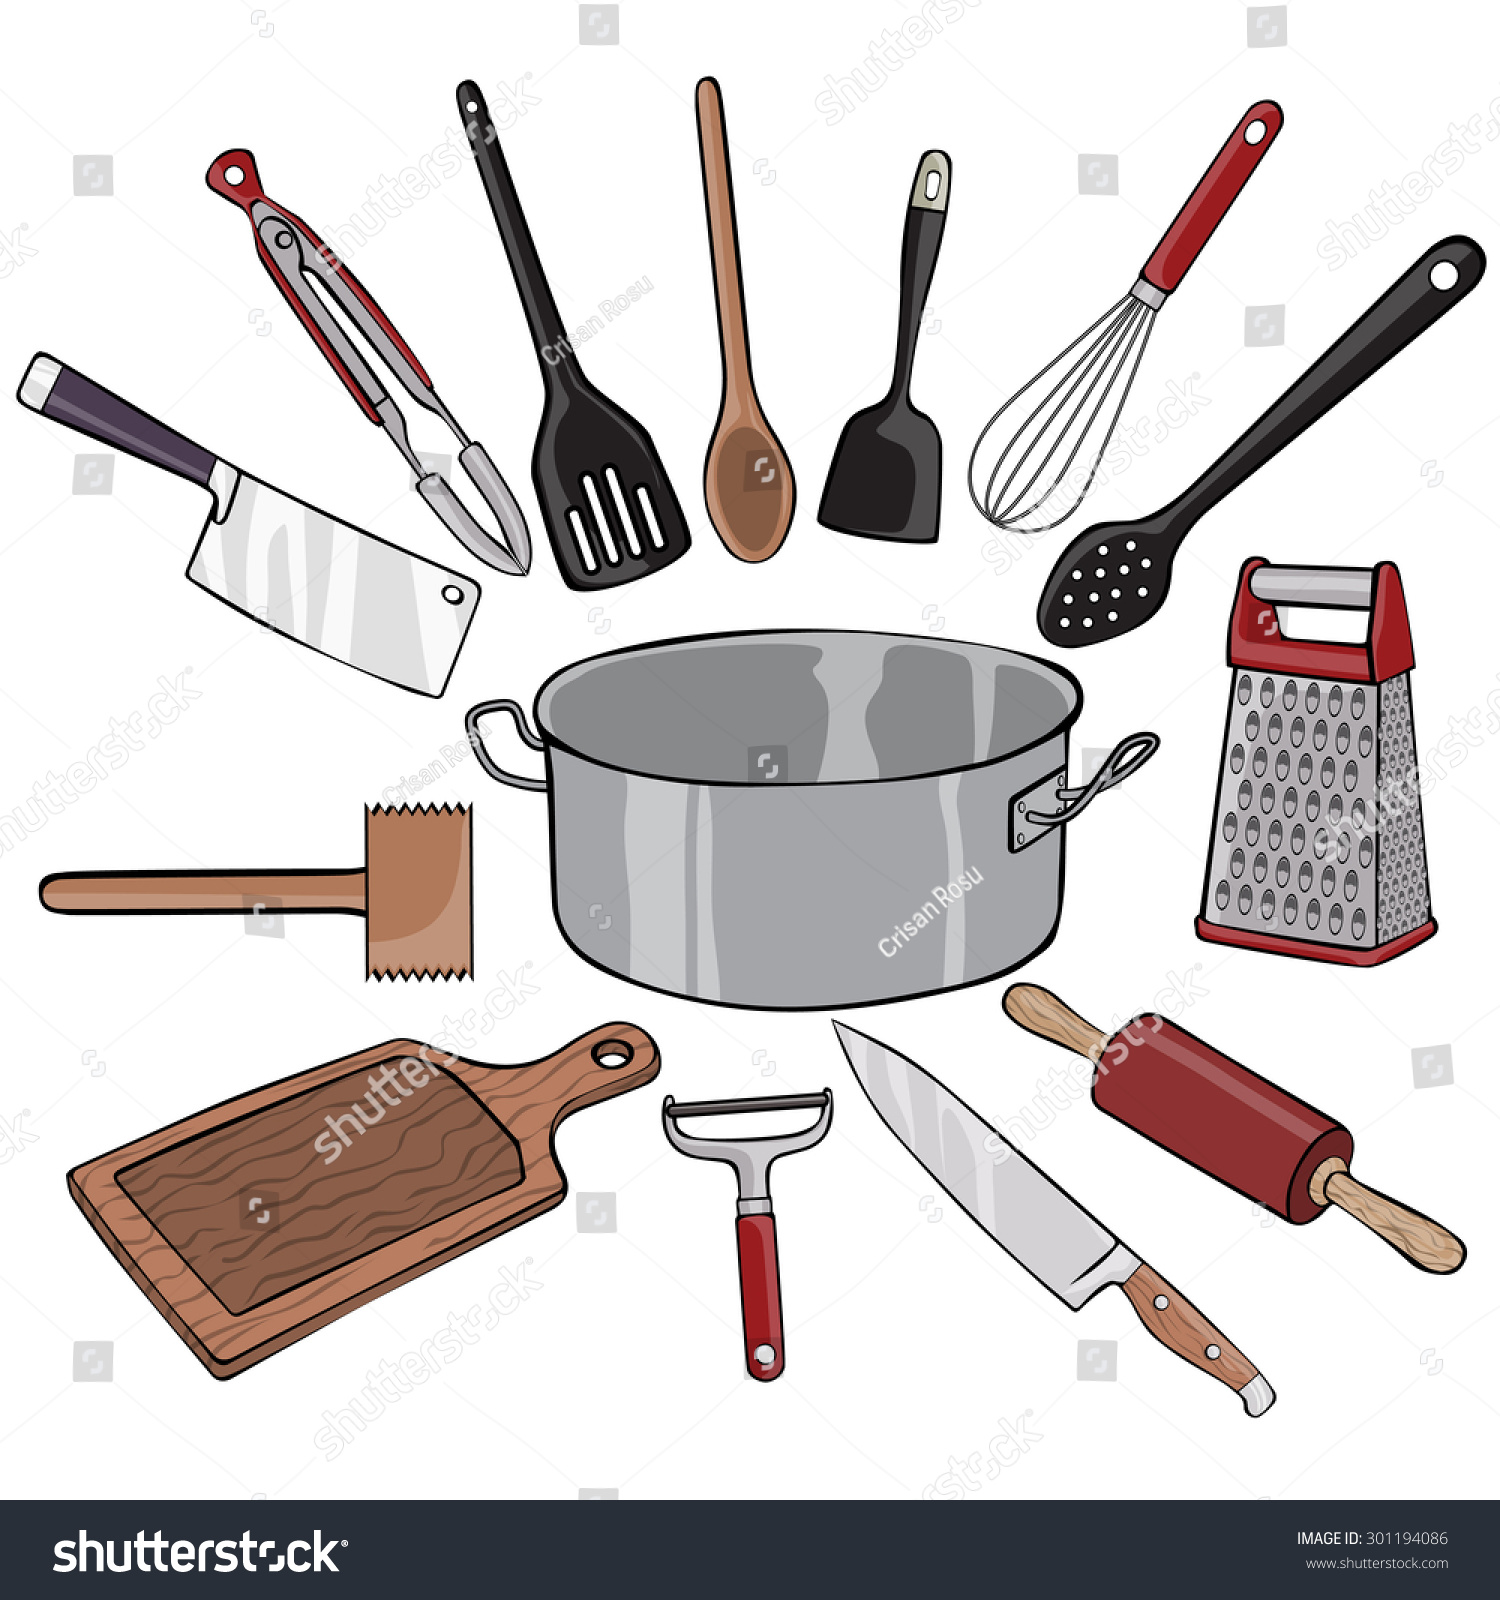 Vector Illustration Kitchen Utensils Cartoon Concept Stock